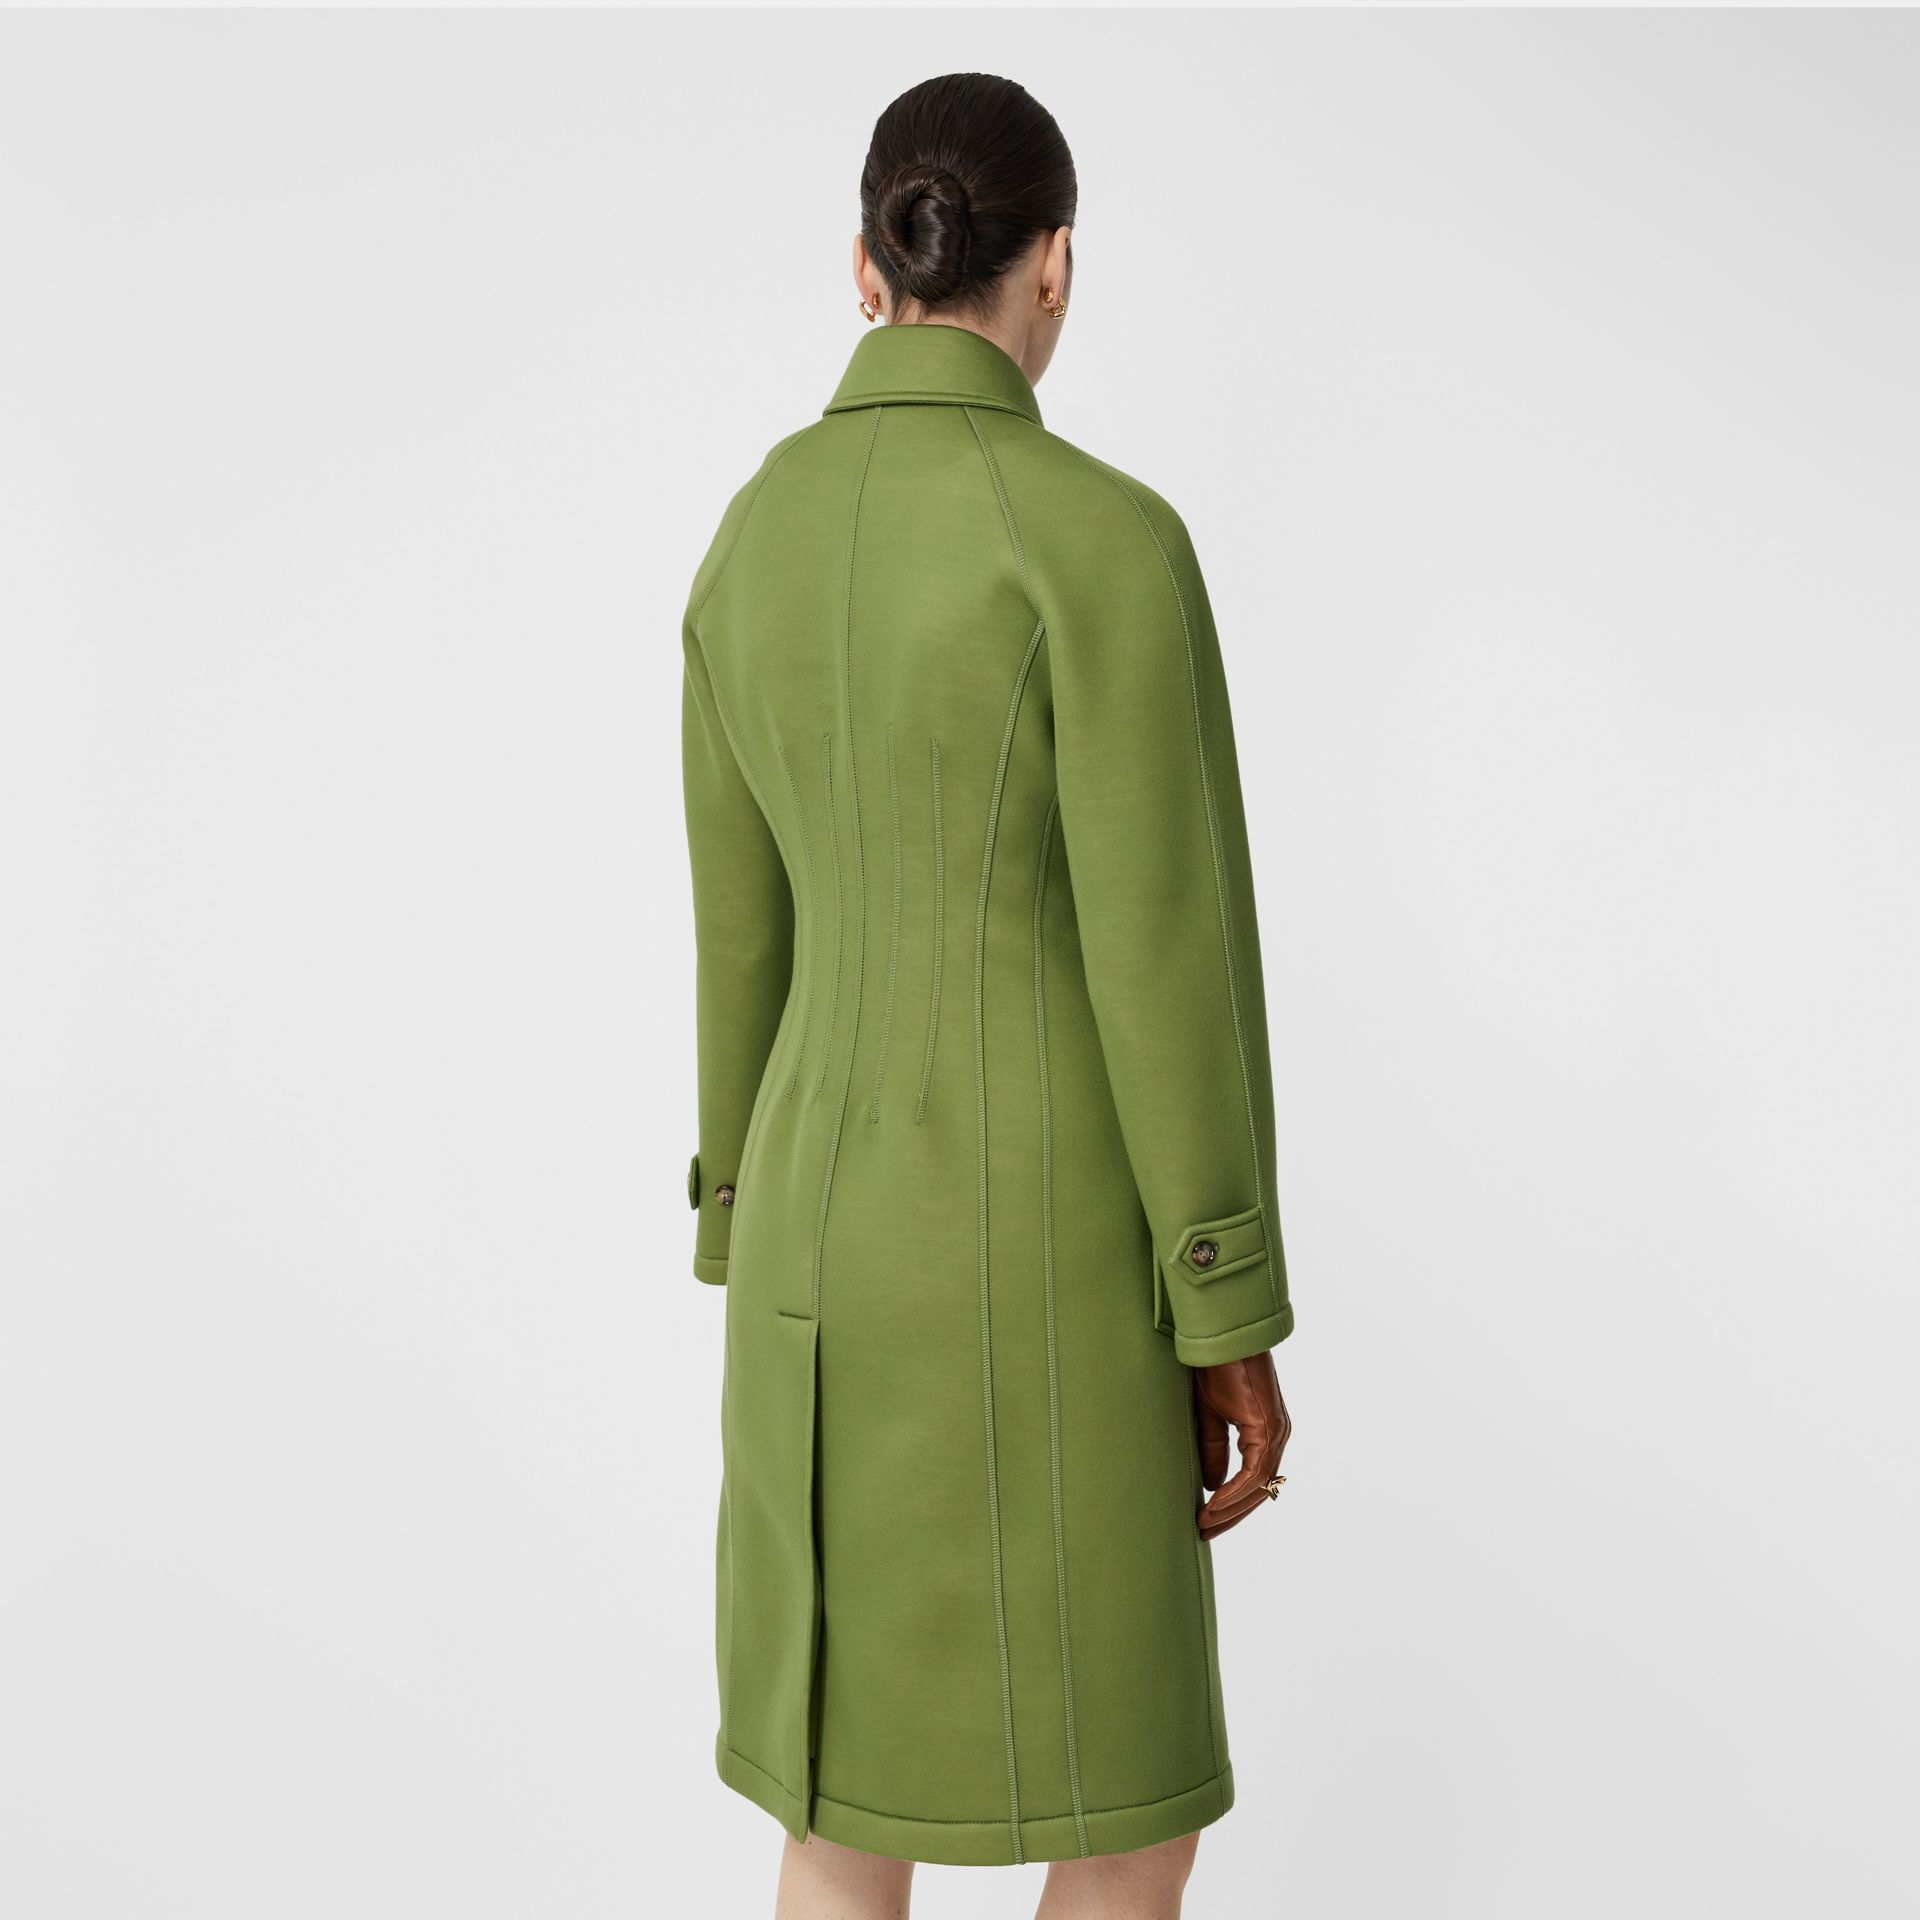 Bonded Neoprene Tailored Car Coat in Cedar Green - Women | Burberry Hong Kong S.A.R - gallery image 2